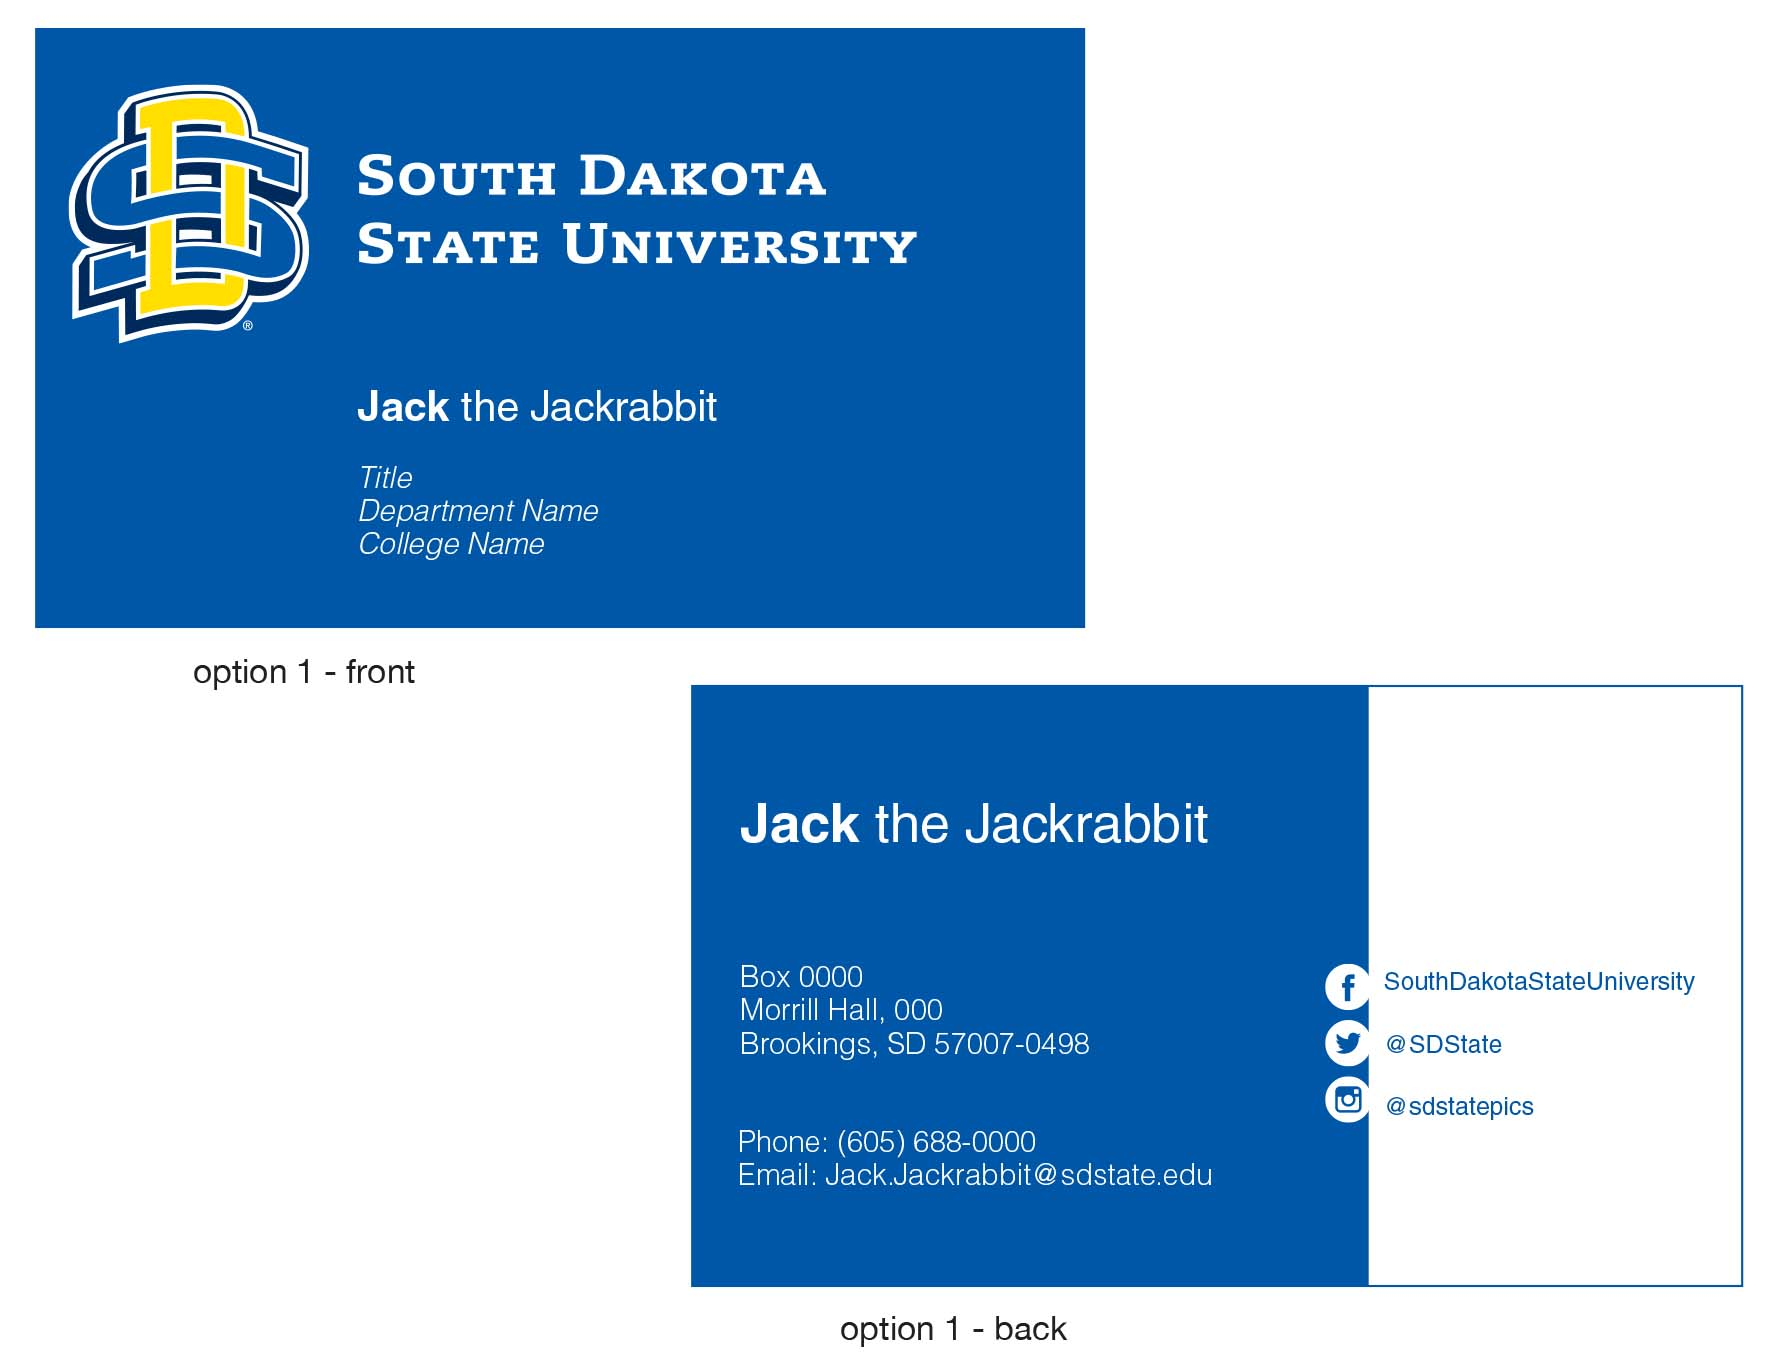 south dakota state university application fee